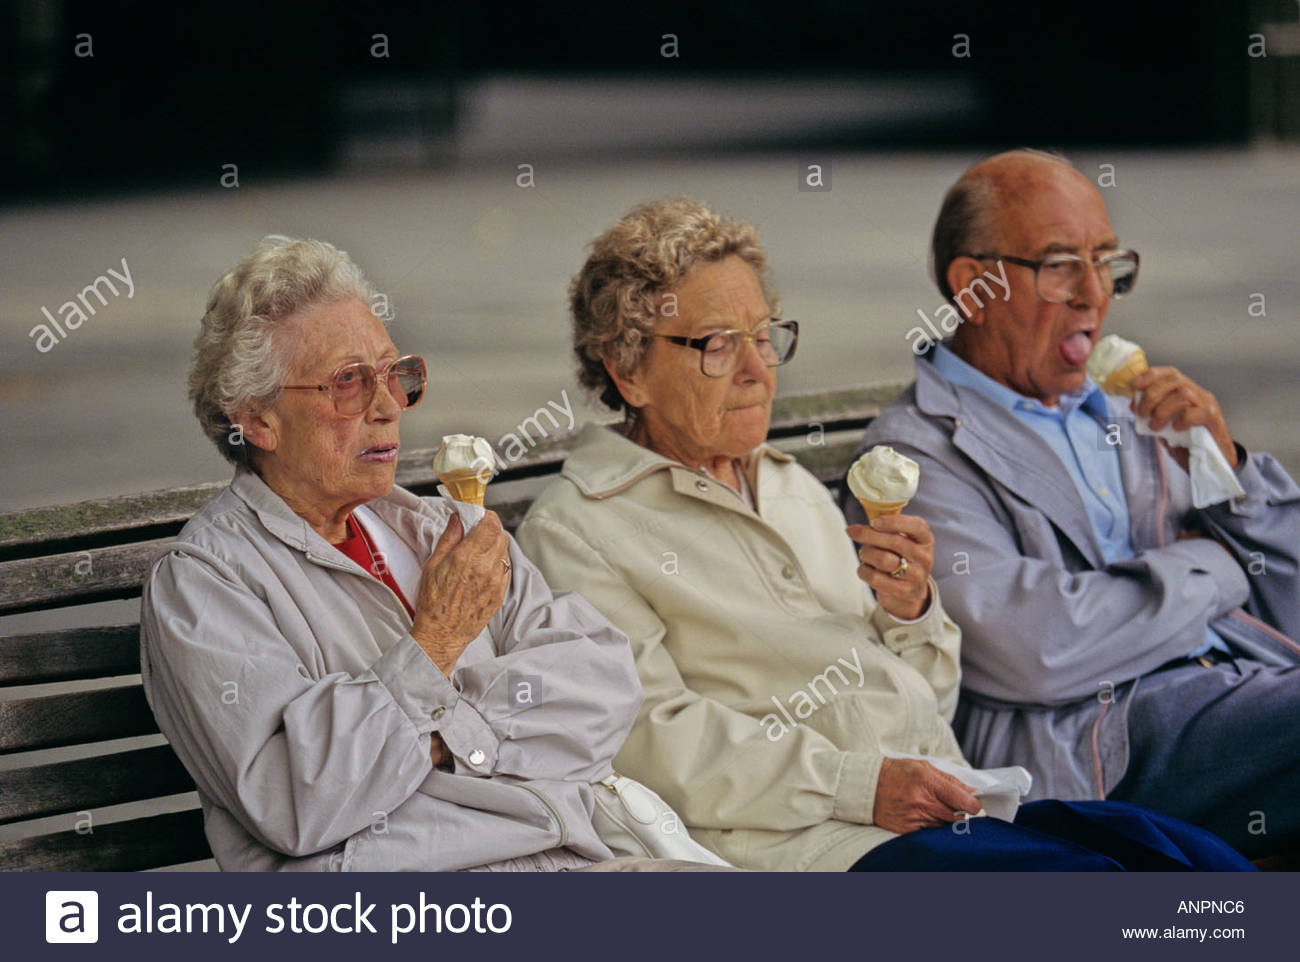 Three Elderly People On A Park Bench Eating Ice Creams